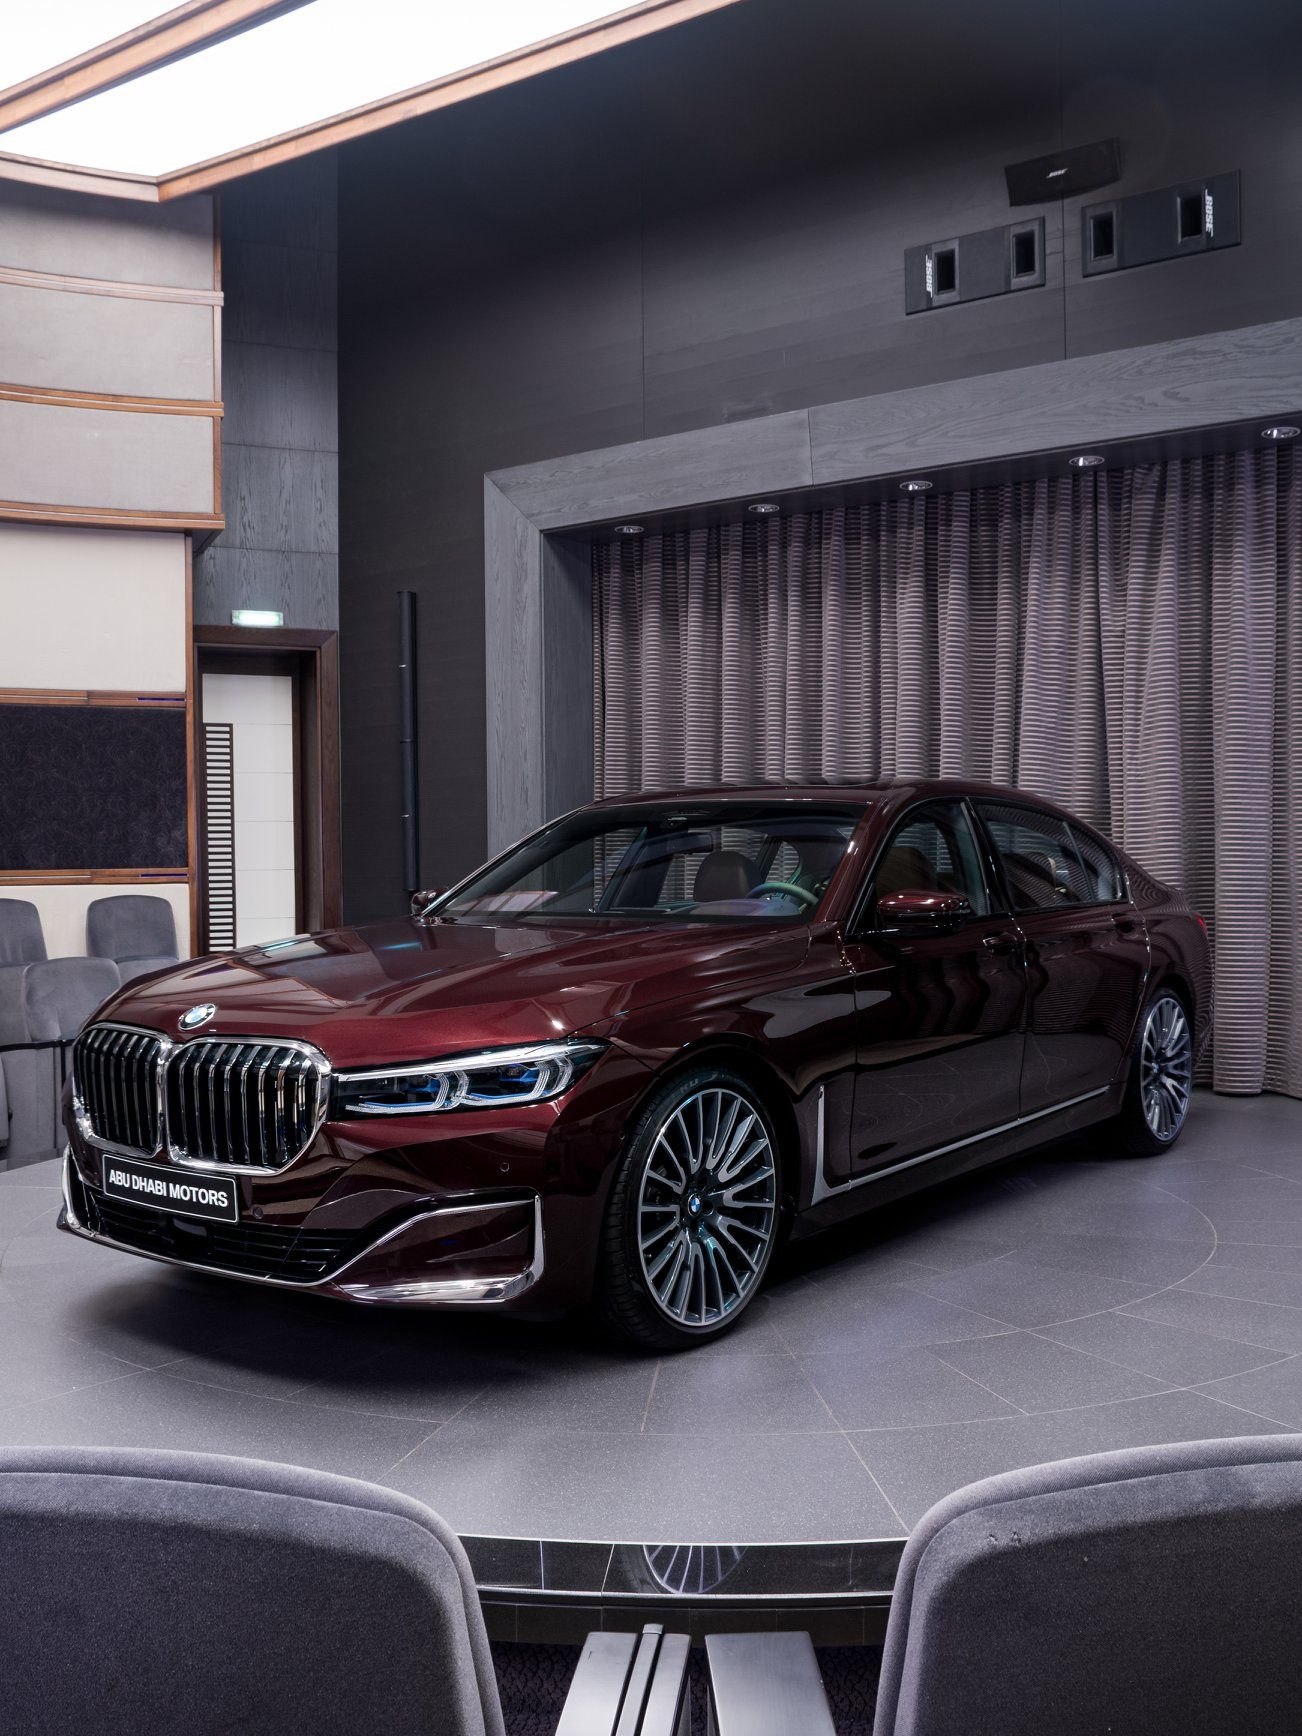 2020_BMW_750Li_Royal_Burgundy_Red_0001